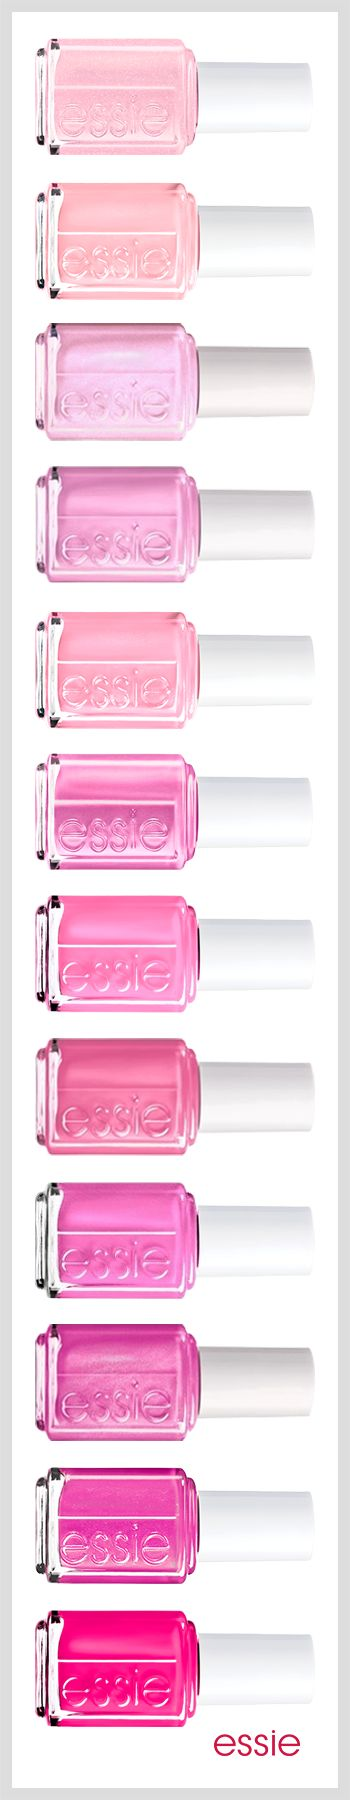 There's a pink for everyone. Go buy Essie! It's amazing... works well, gorgeous shades, and made in America... :)